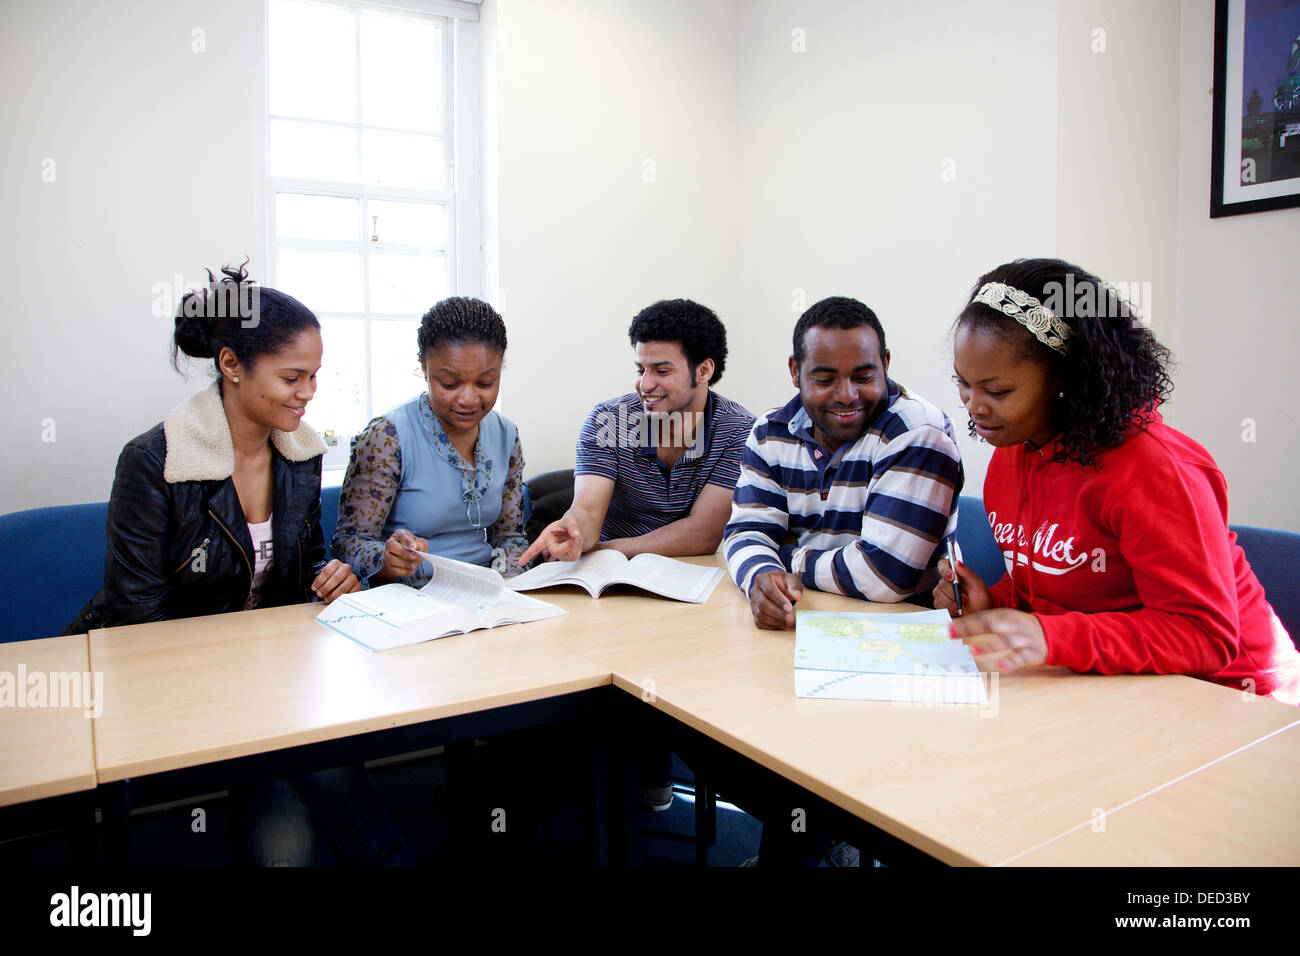 foreign students in classroom - Stock Image